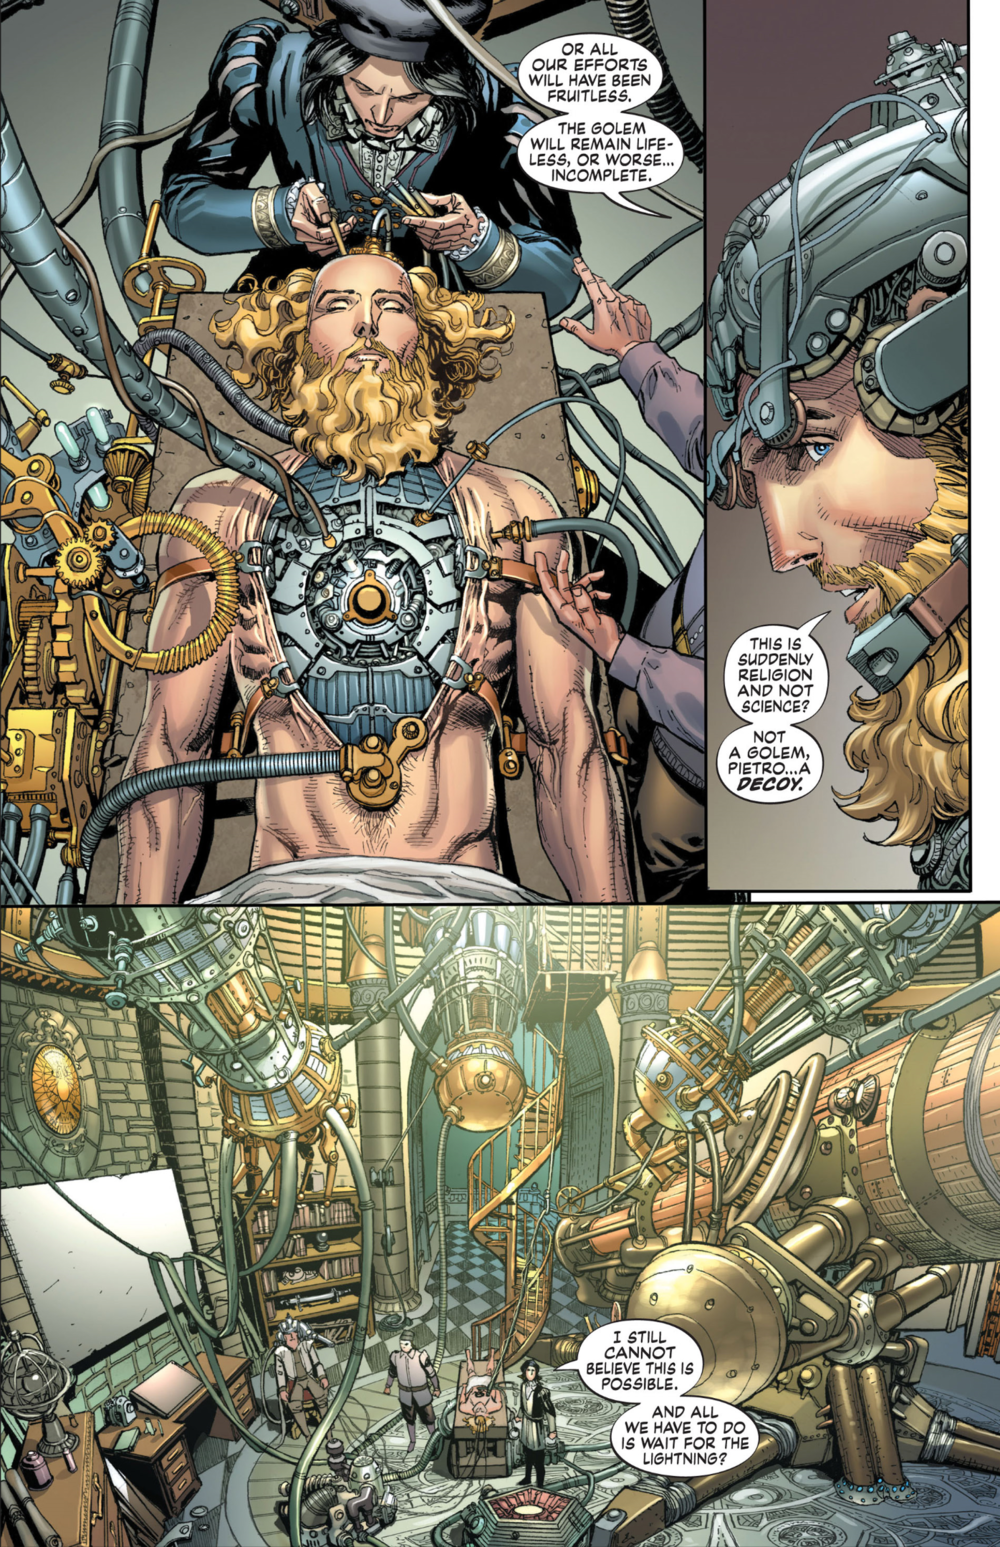 S.H.I.E.L.D. #2, art by Dustin Weaver and Sonia Oback